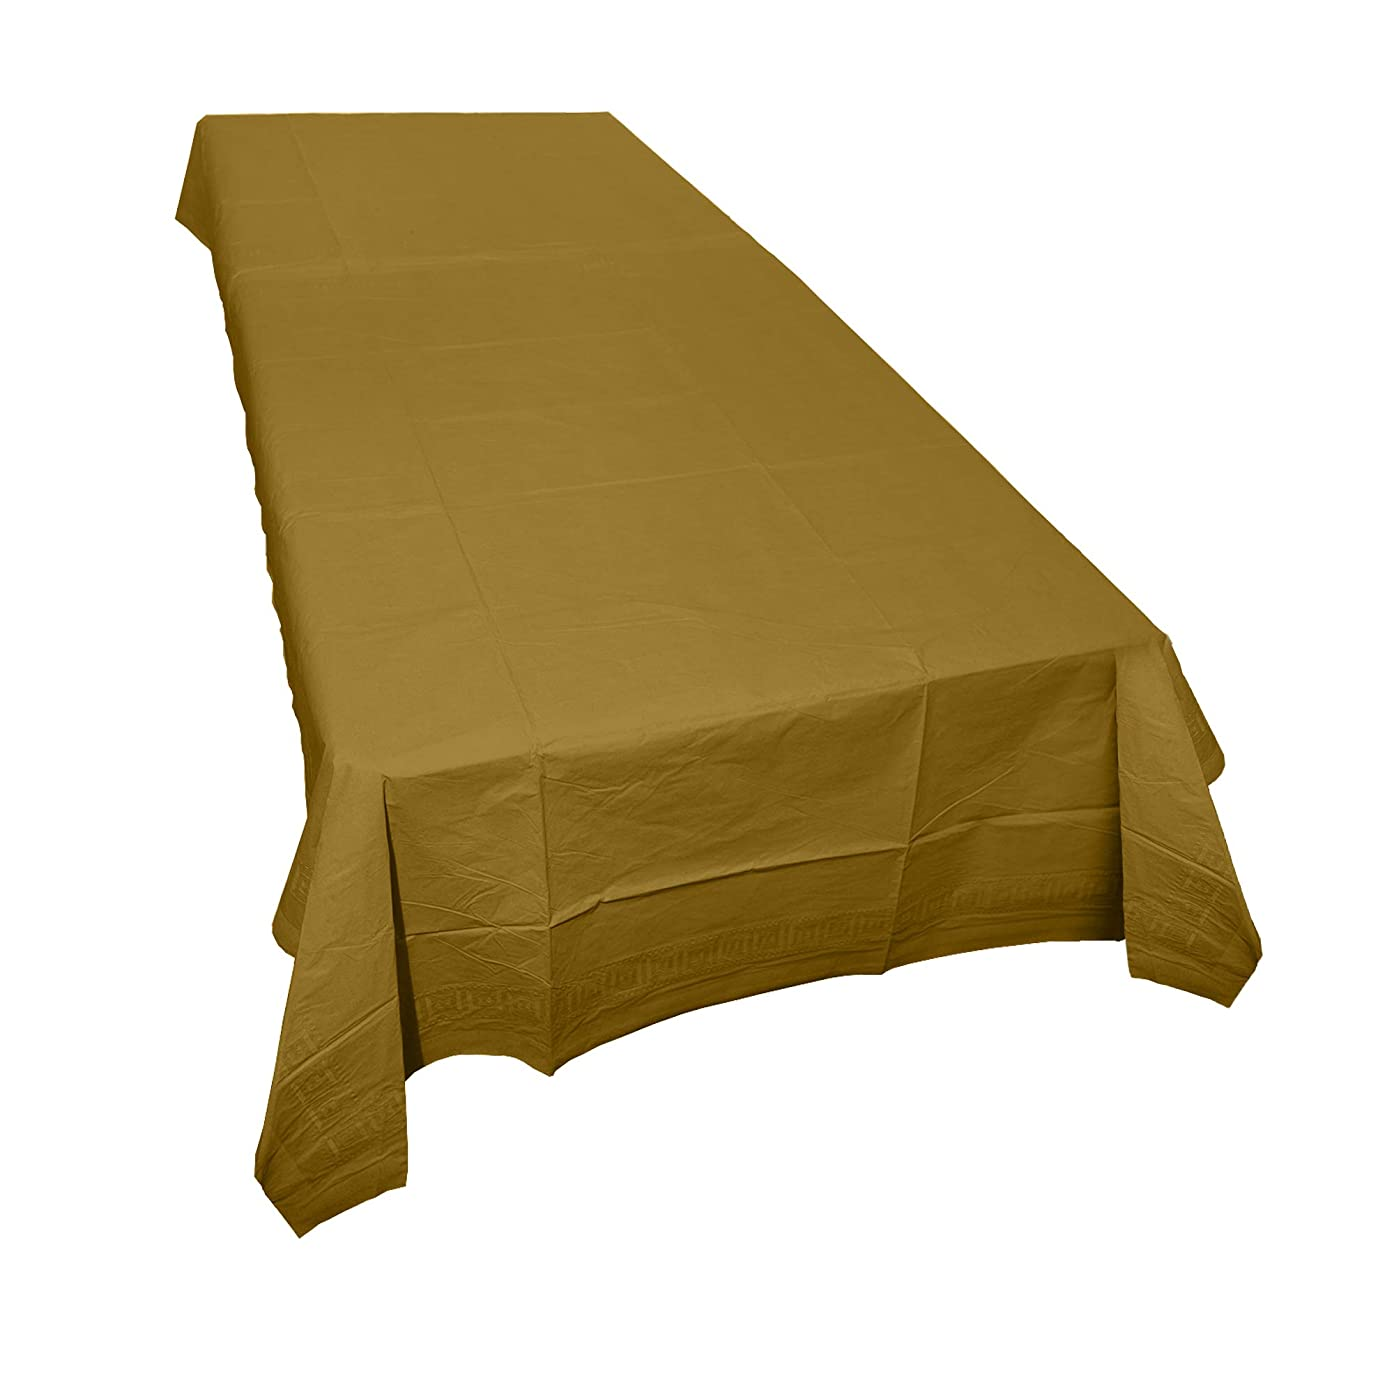 SparkSettings Disposable Table Cover Absorbent Classy Paper Table Cover Picnic Party Graduation Table Covers Perfect for Casual or Elegant Events - Gold,